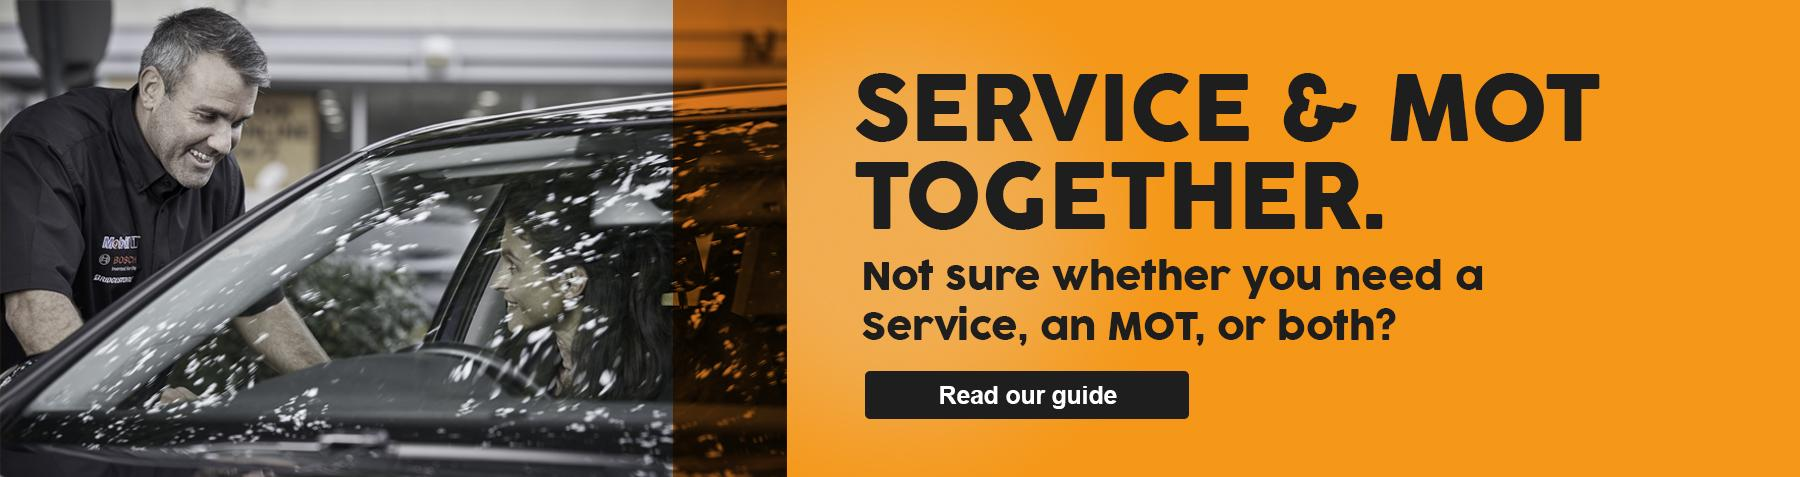 Service and MOT together advice